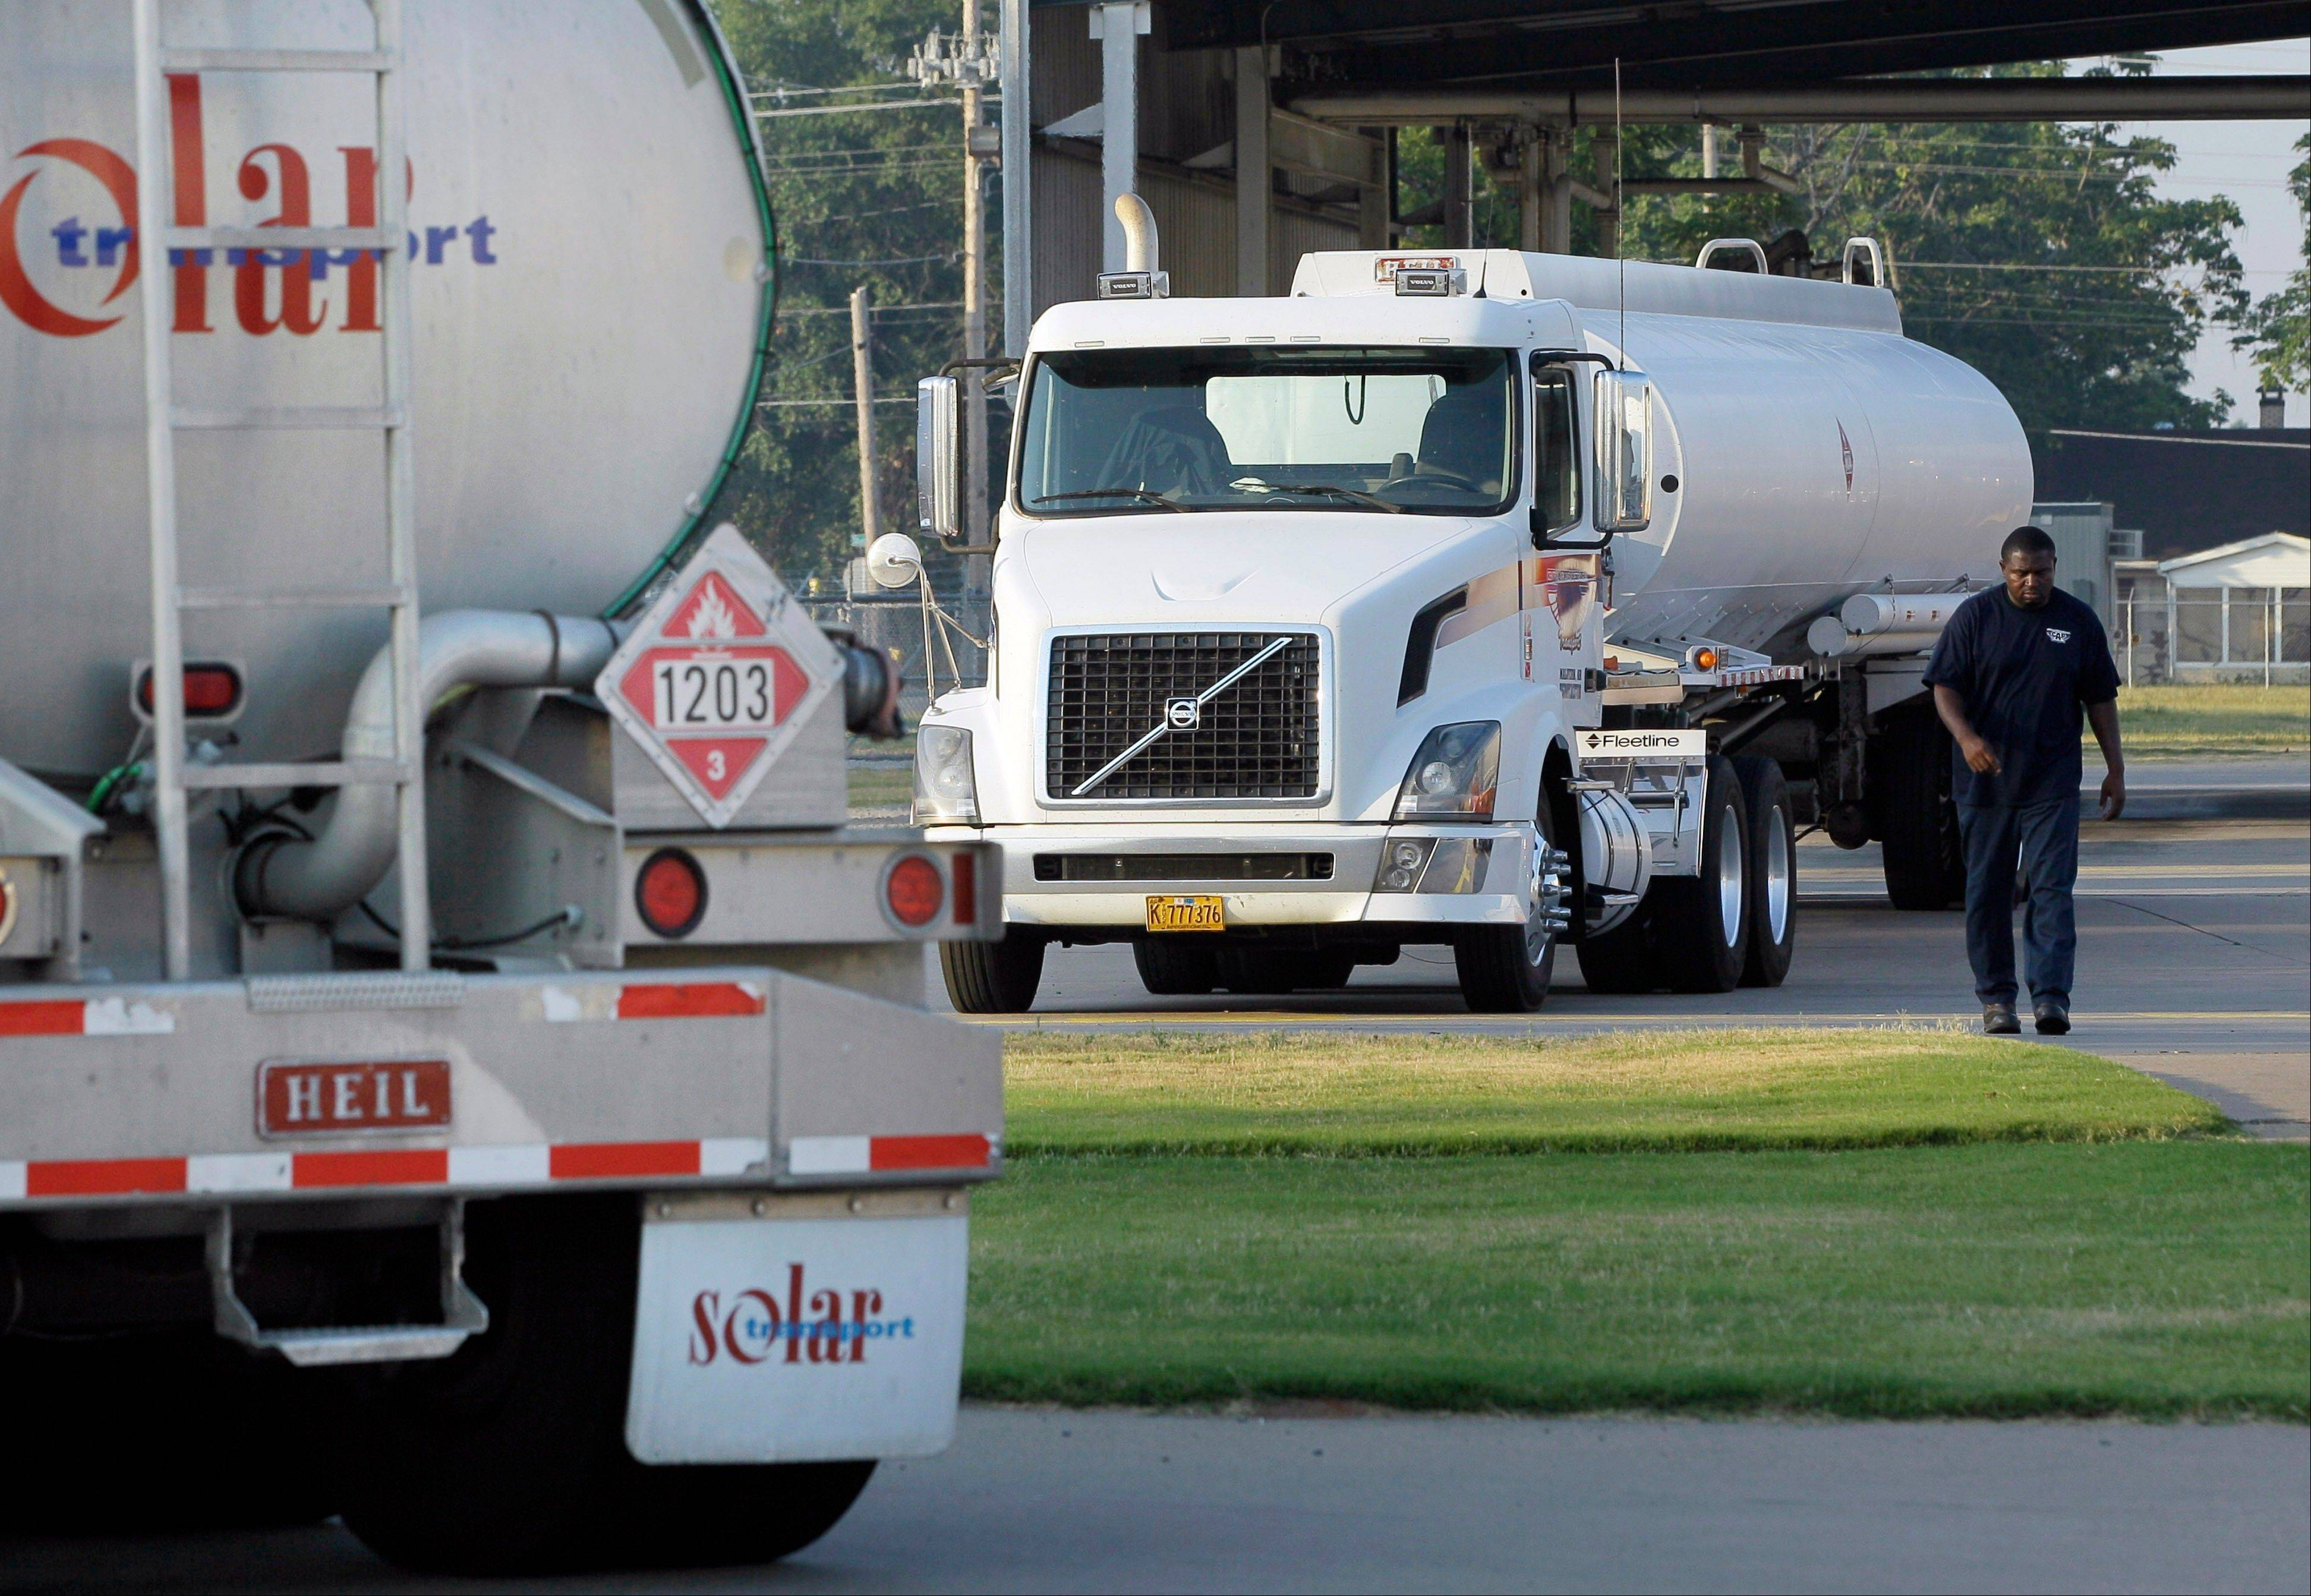 A man walks from a gasoline tanker truck at a North Little Rock, Ark., fuel distribution terminal.